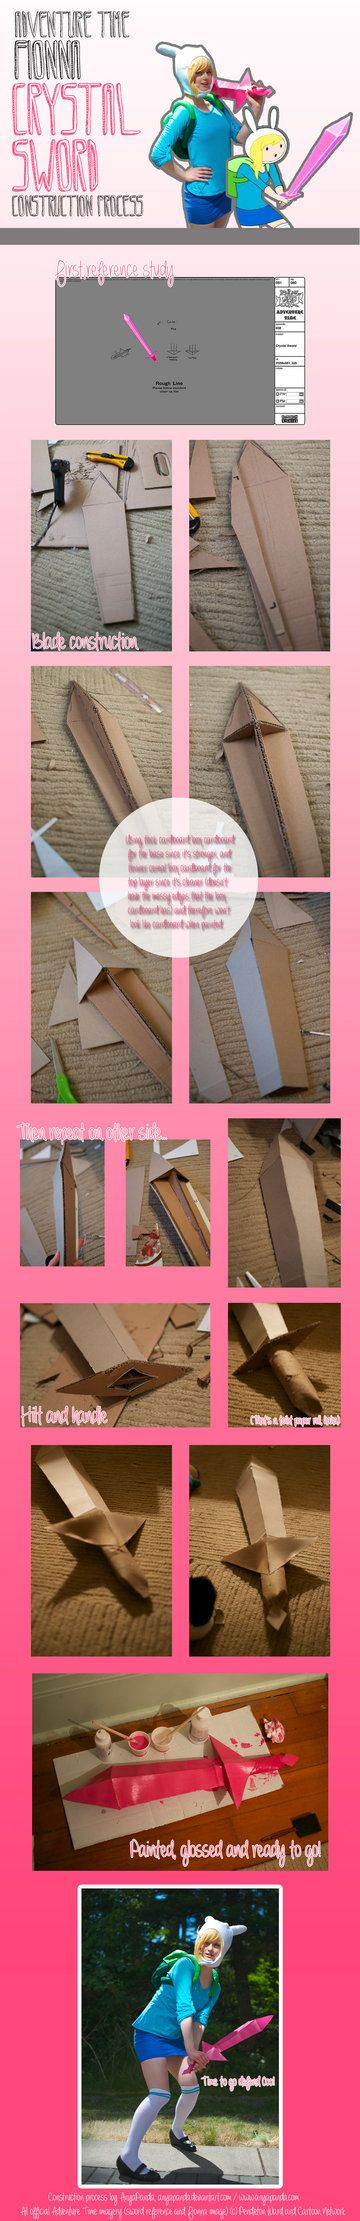 Since I get a lot of questions regarding some of the non-sewn parts of my cosplays, I thought I'd get into the habit of photographing each stage of my props' construction so that I can offer visual...